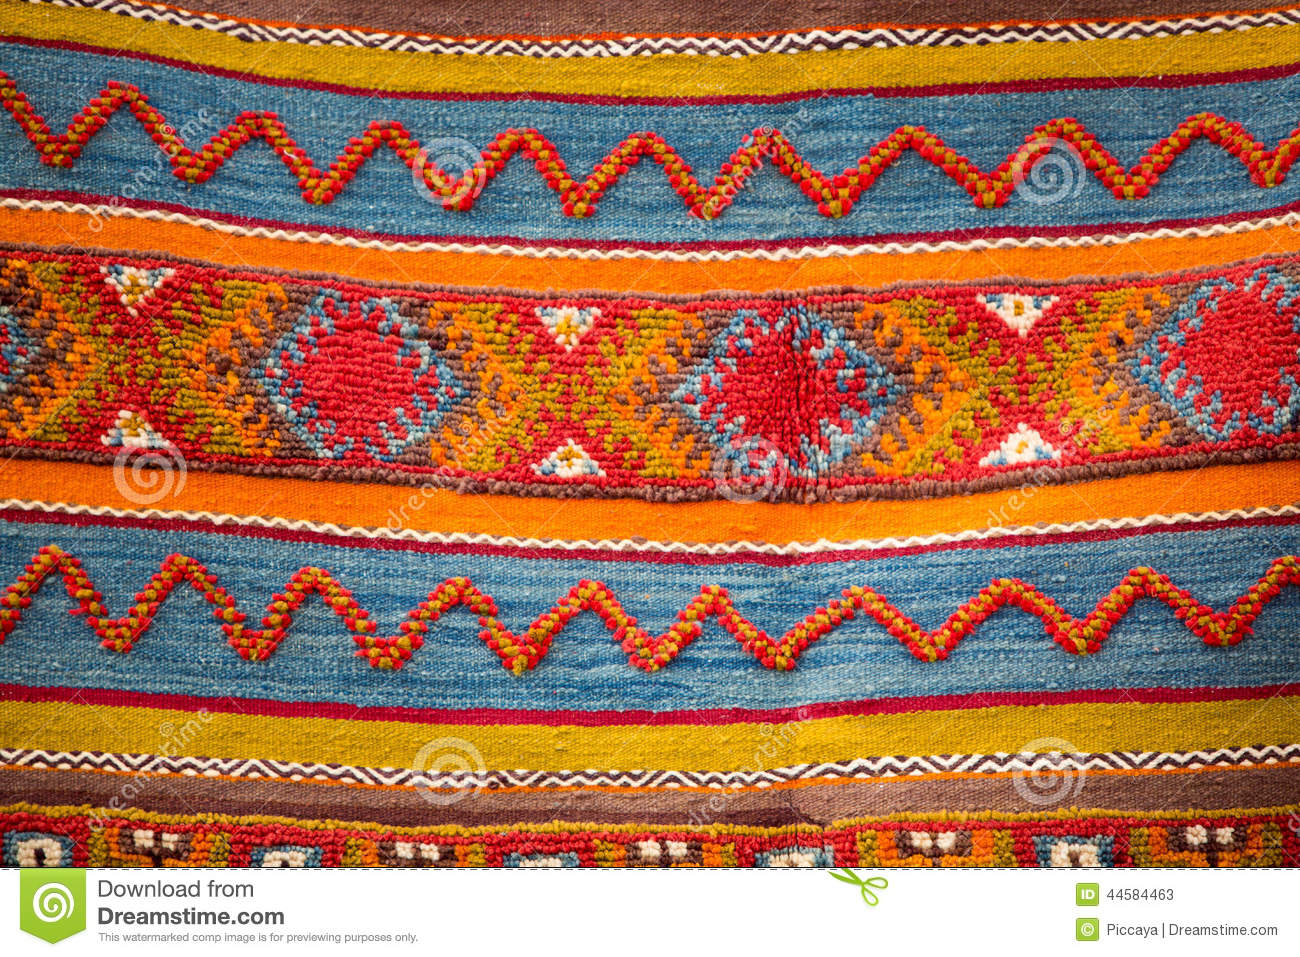 Berber Teppiche Marrakesch Moroccan Berber Carpet Background Photo Stock Image